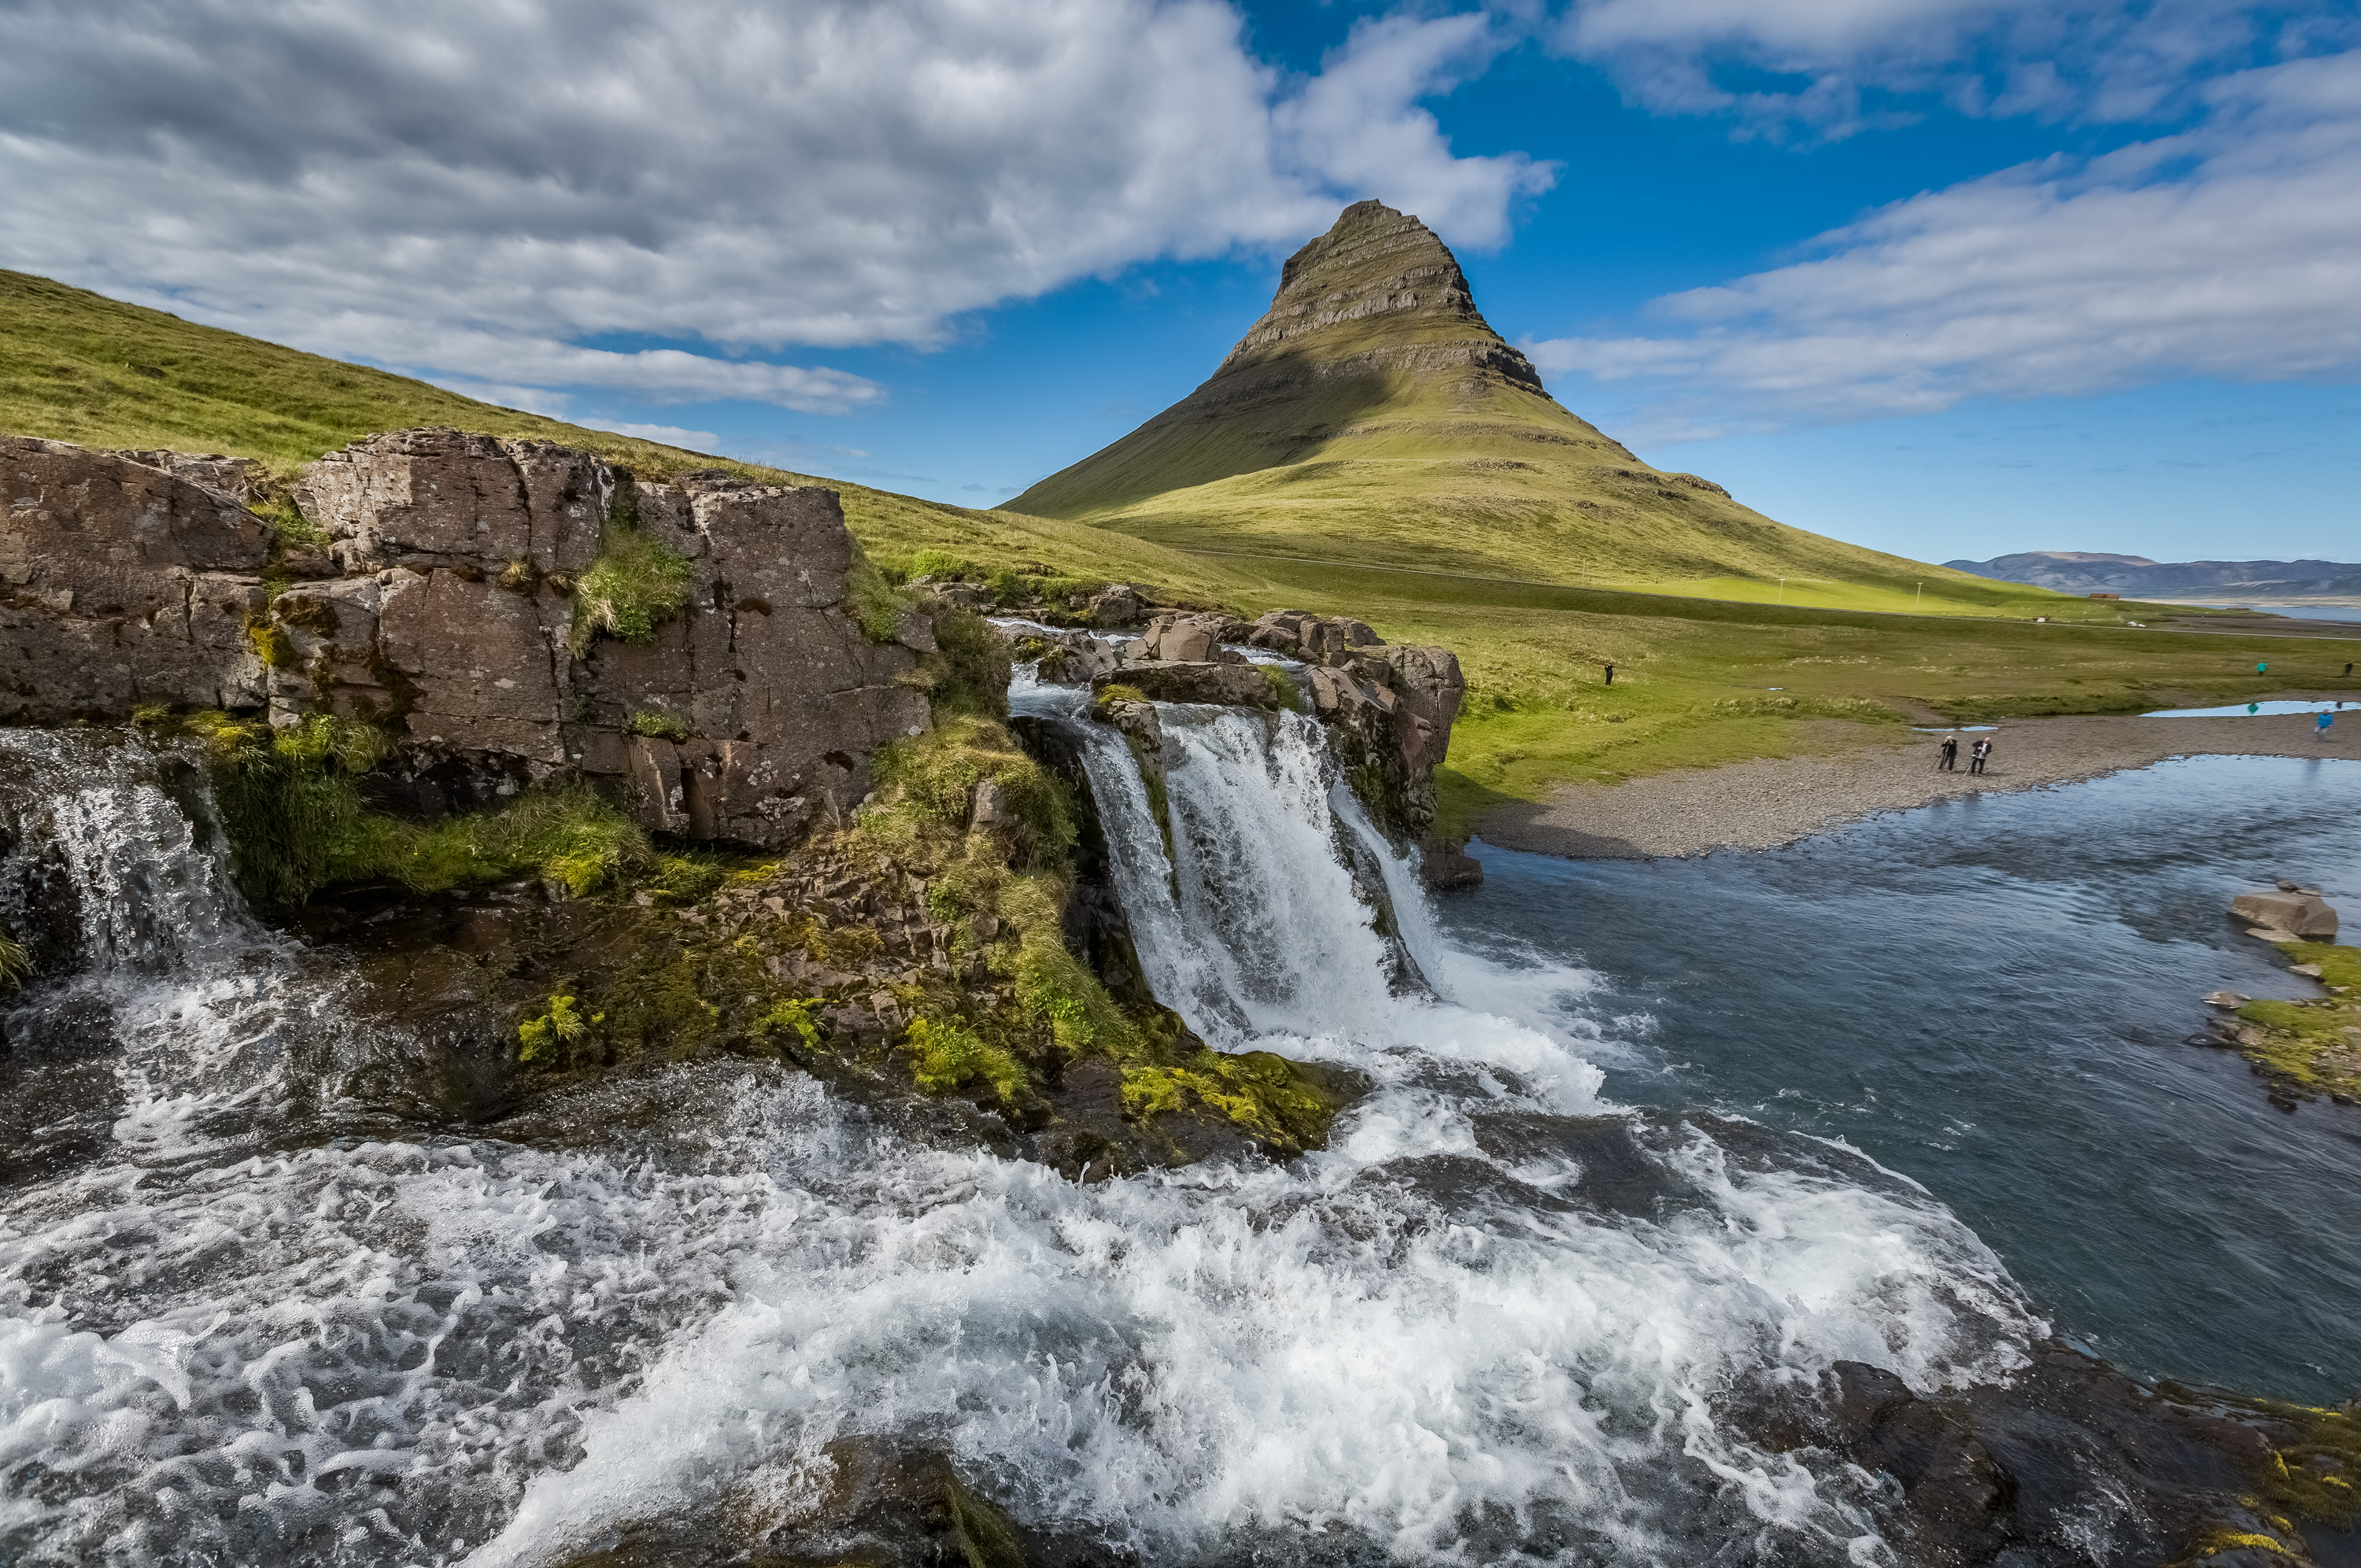 beautiful scenery in iceland - image credit Icealnd Tourism - kirkjufellsfoss-sumarid-2013-80 - Reasons to visit Iceland more than once